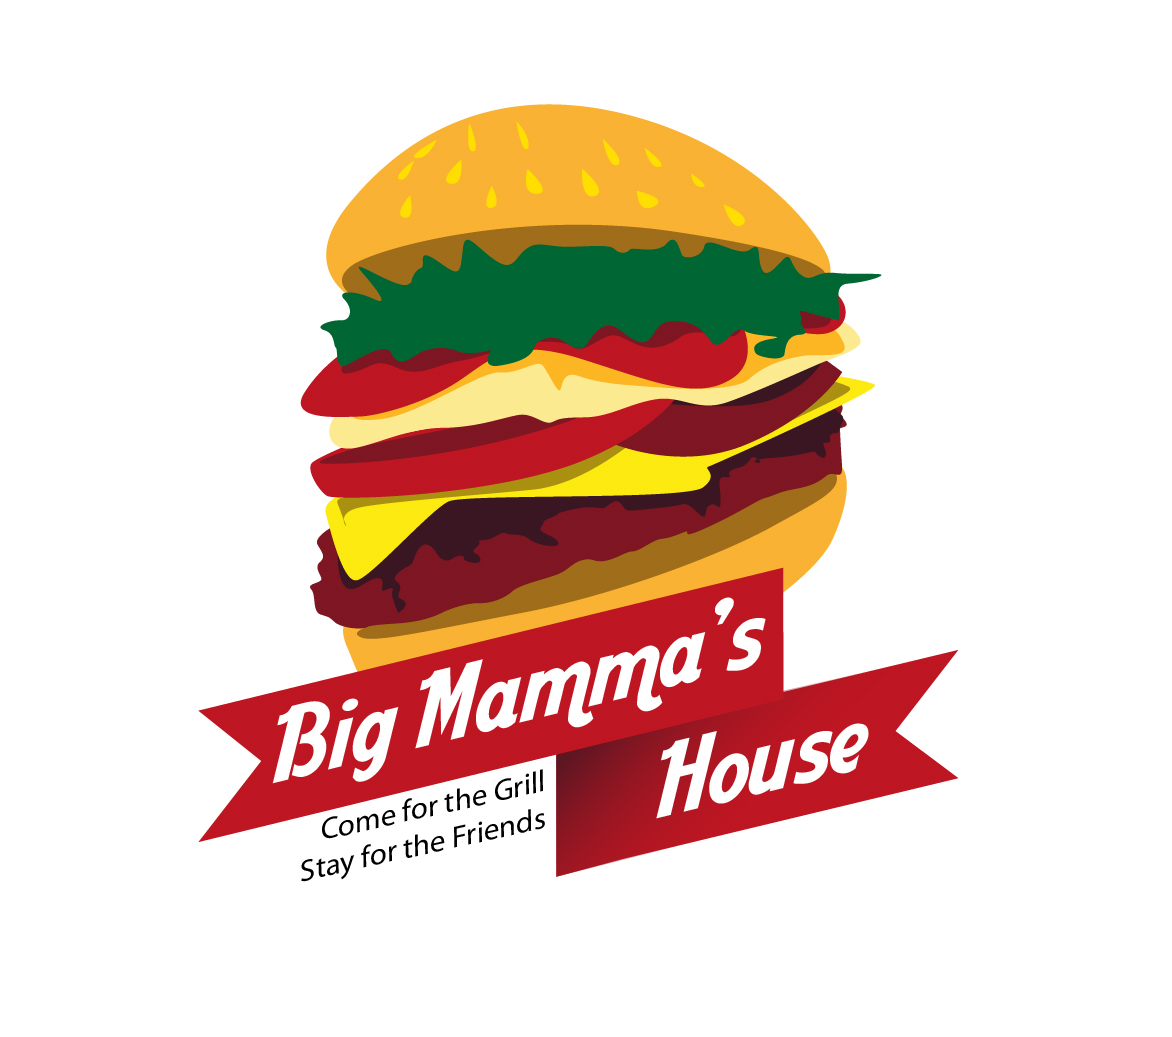 Logo Design by Ndaru Ap - Entry No. 10 in the Logo Design Contest Captivating Logo Design for Big Mamma's House.